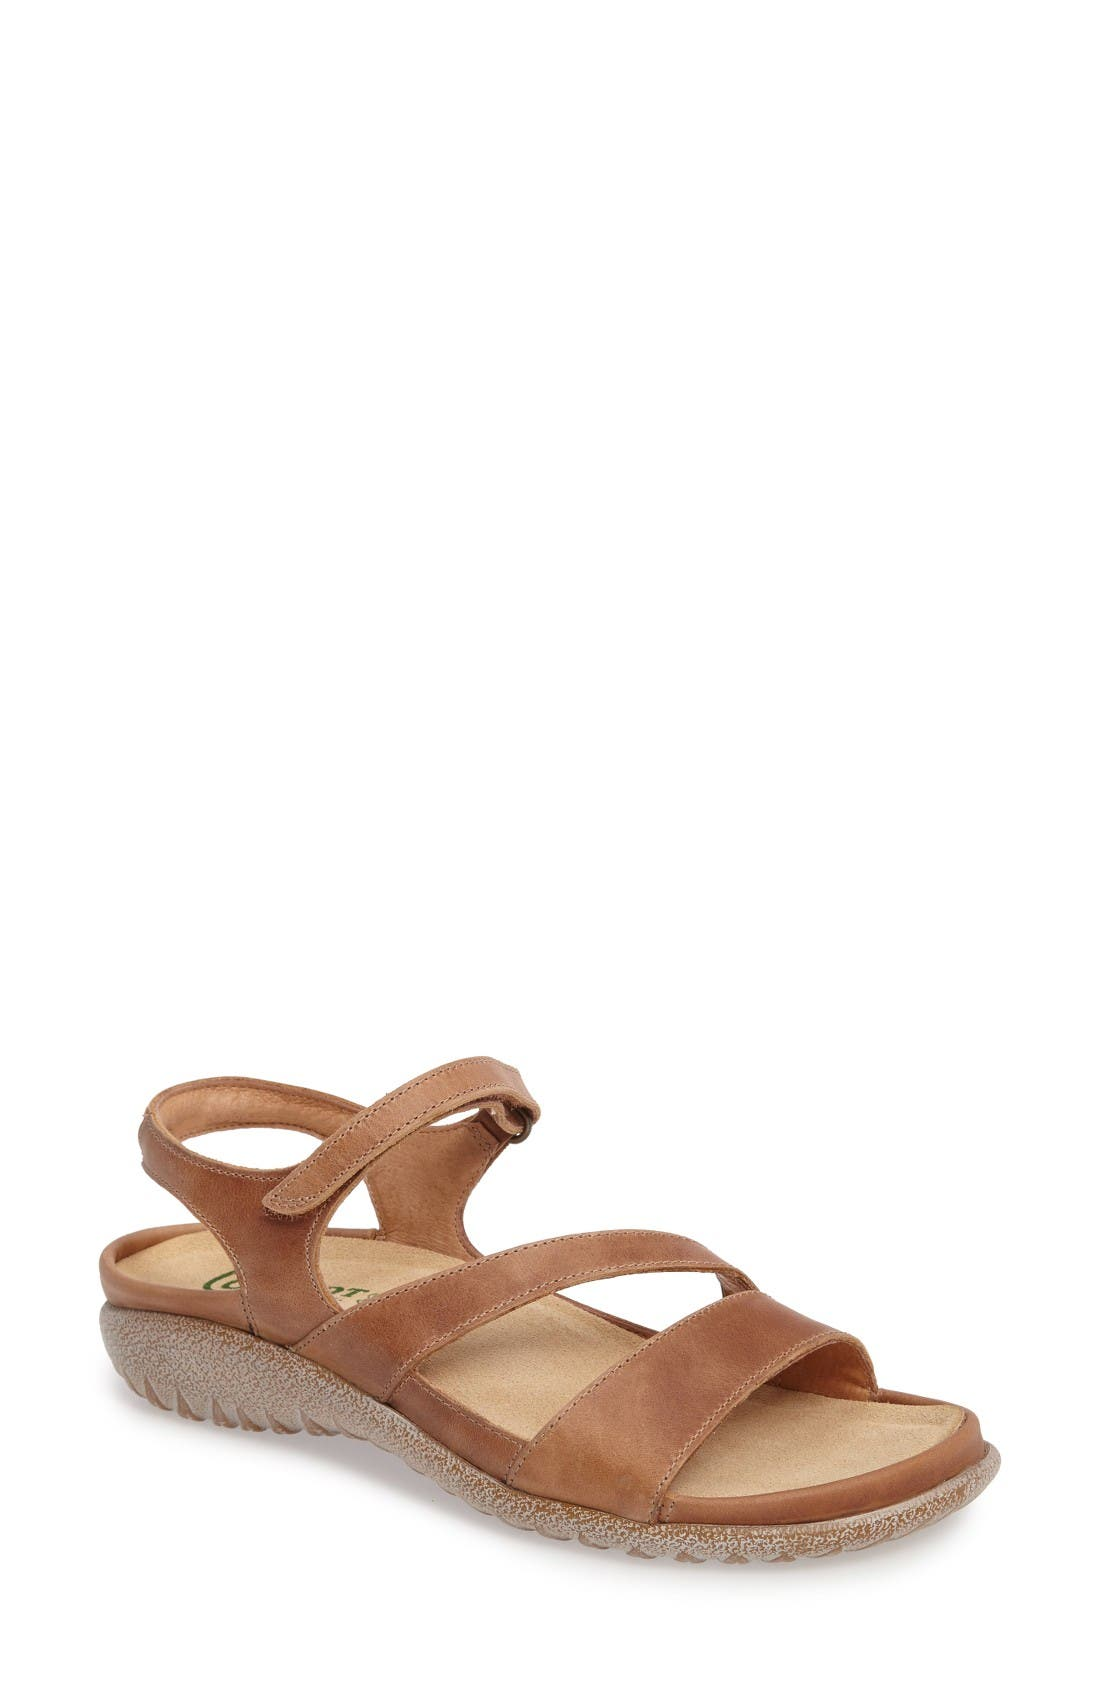 'Etera' Sandal,                             Main thumbnail 1, color,                             Brown Leather